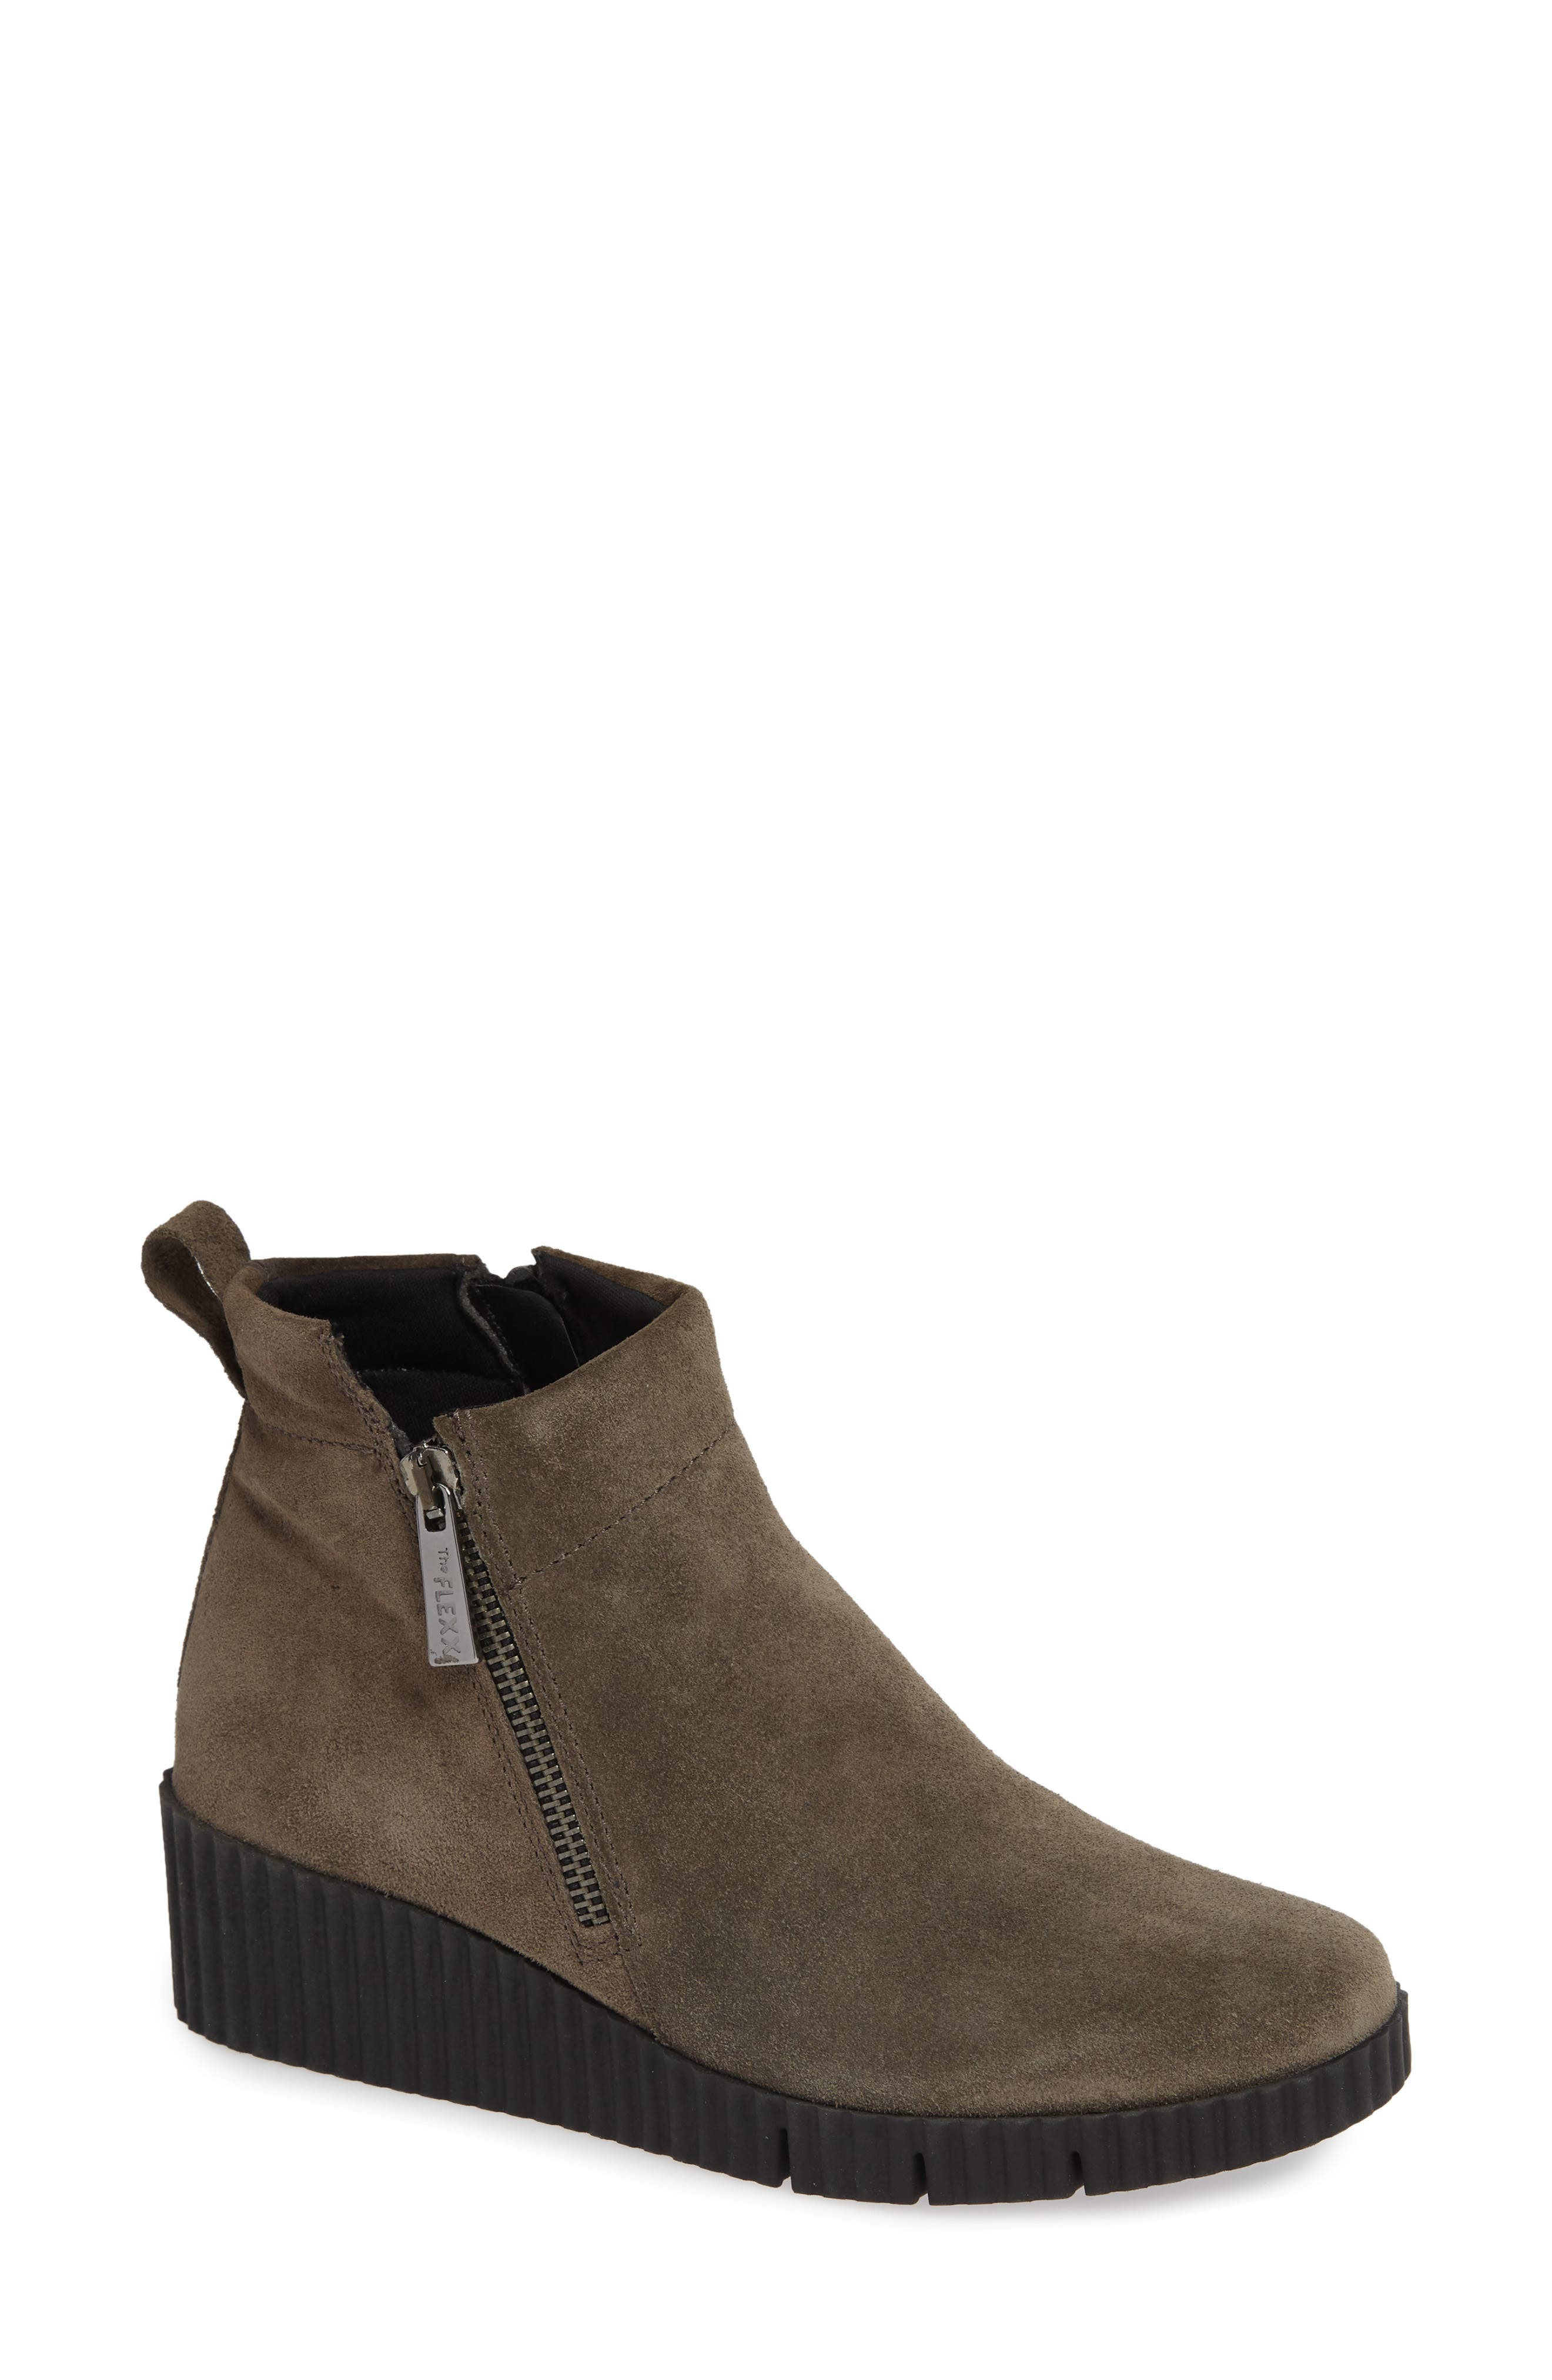 THE FLEXX Easy Does It Wedge Bootie, Main, color, BROWN SUEDE